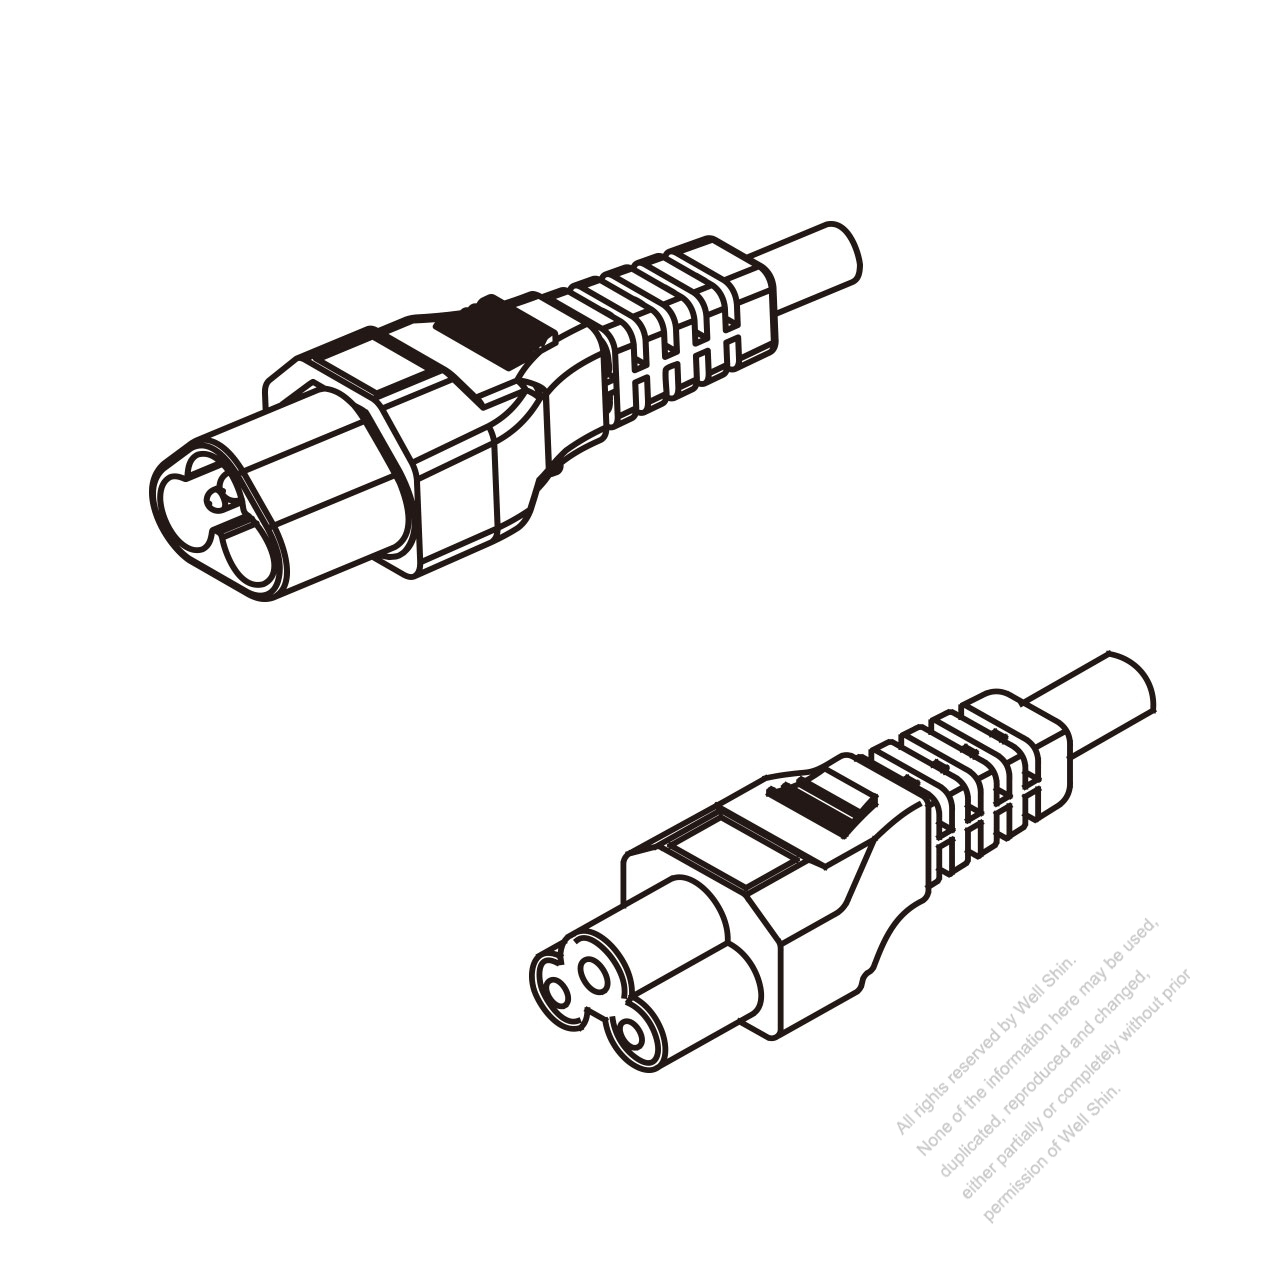 hight resolution of europe 3 pin iec 320 sheet a plug to iec 320 c5 ac power cord